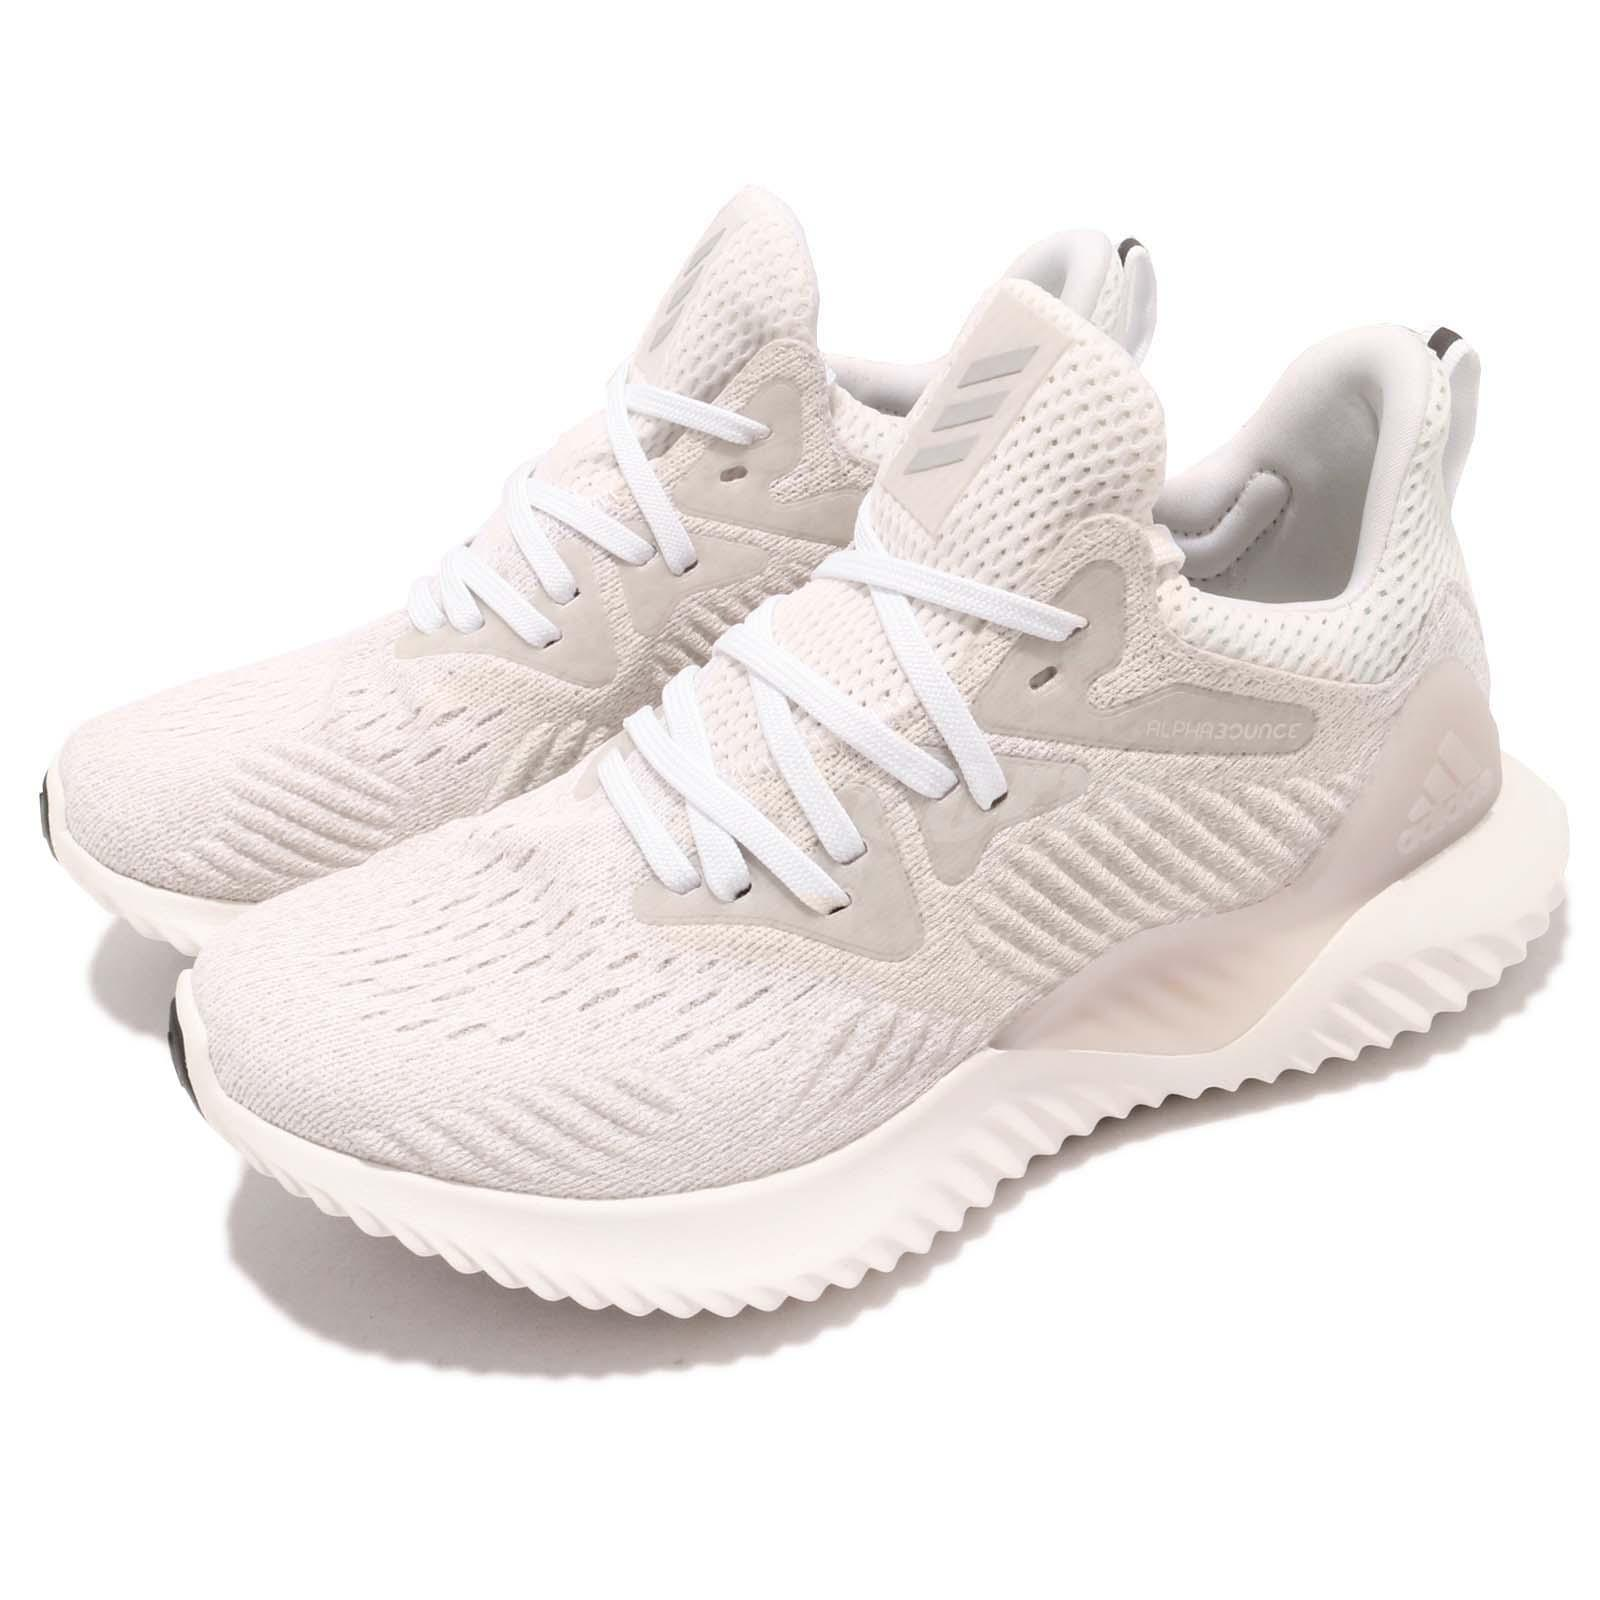 a45b5405f5d80 Details about adidas Alphabounce Beyond W White Grey Black Women Running  Shoes Sneakers B76048